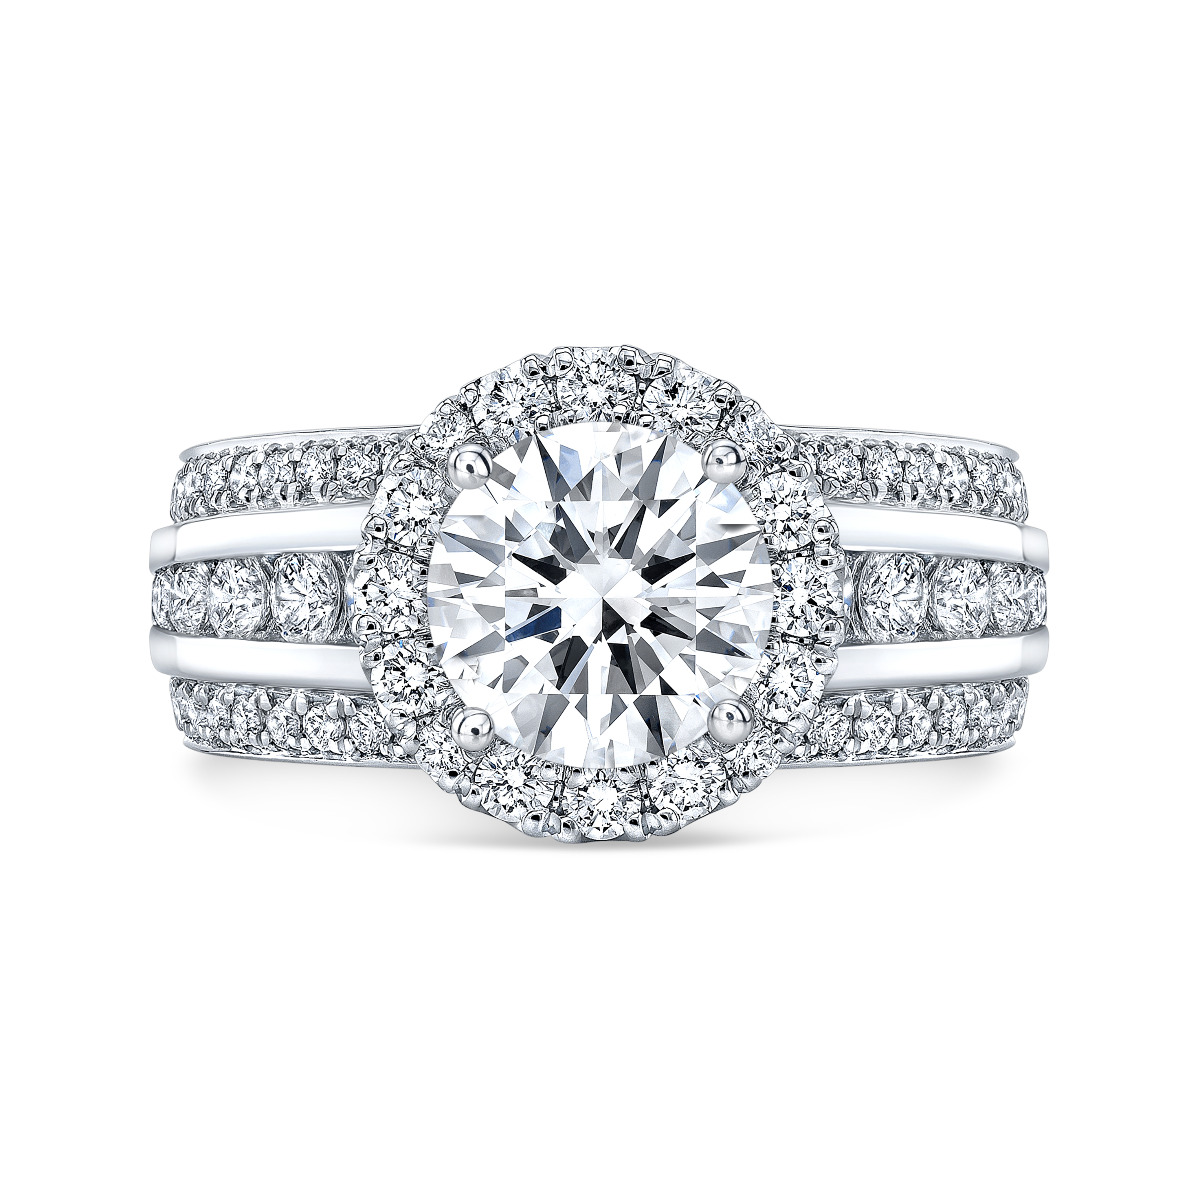 Halo 3 Row Shank Pave & Channel Set Engagement Ring